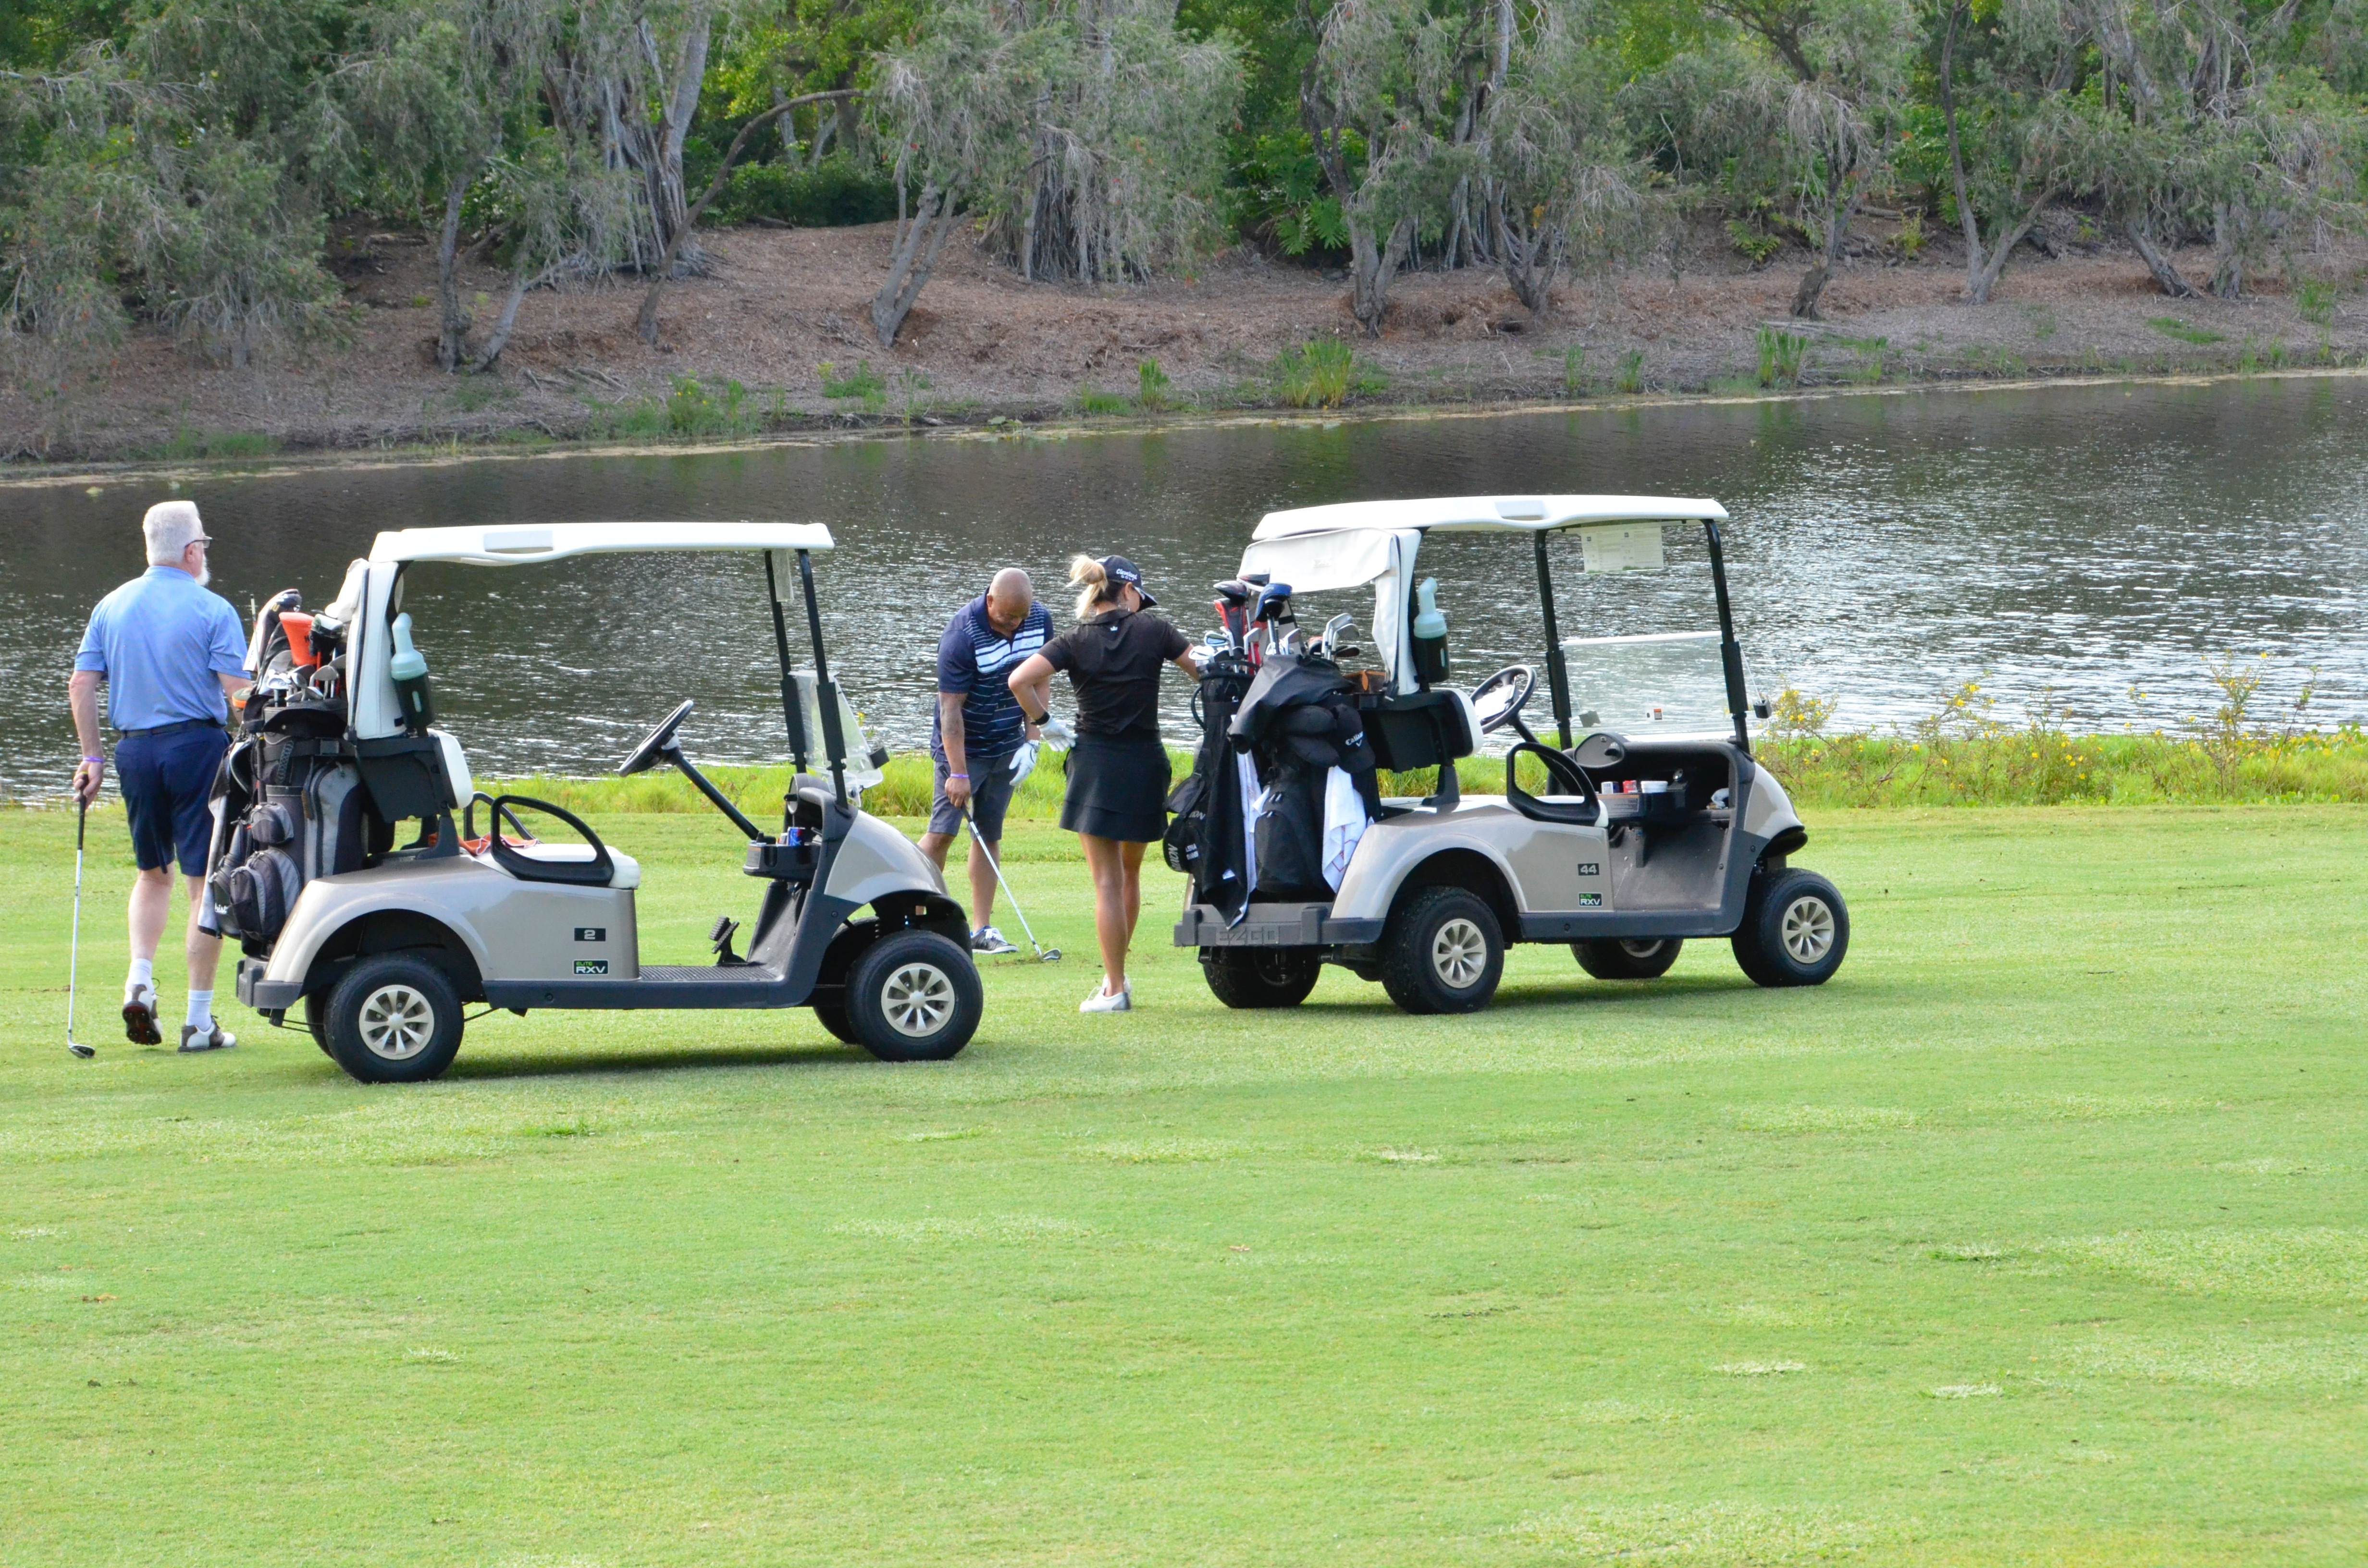 33rd Annual Rotary Golf Classic Sponsored by FHVLEGAL.COM gallery image #89